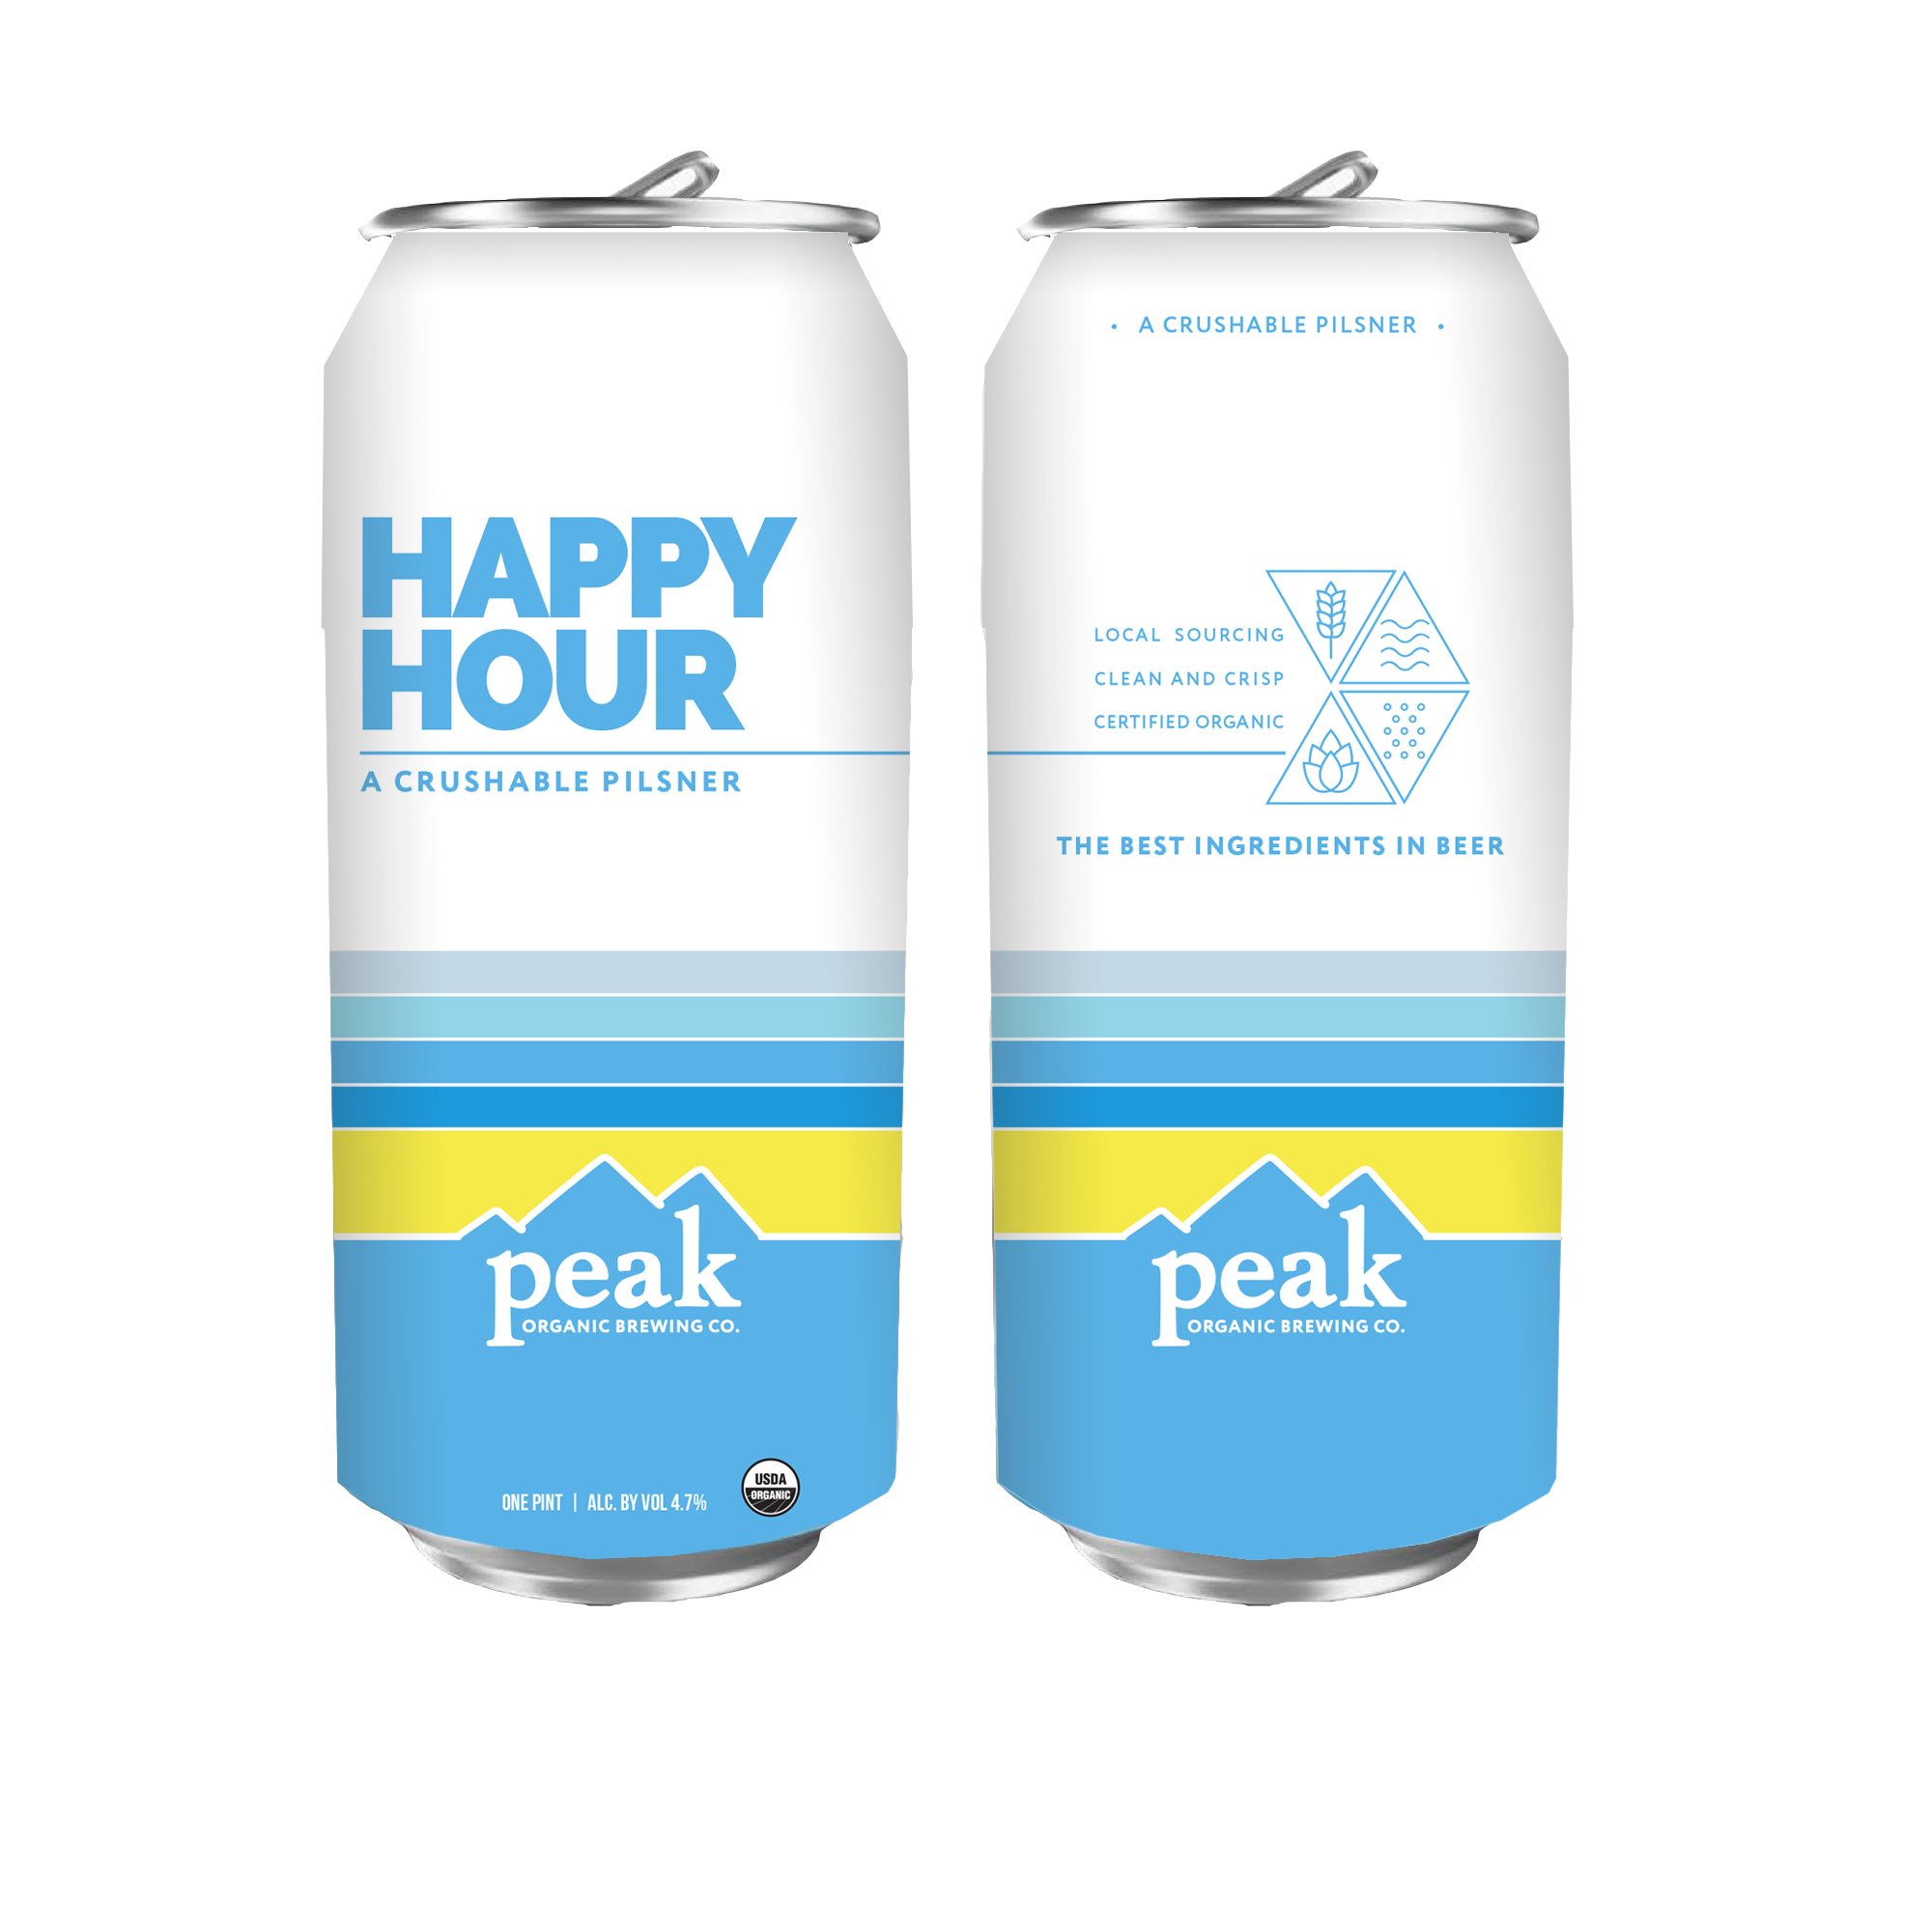 HappyHour_16oz_Can_mockup.png